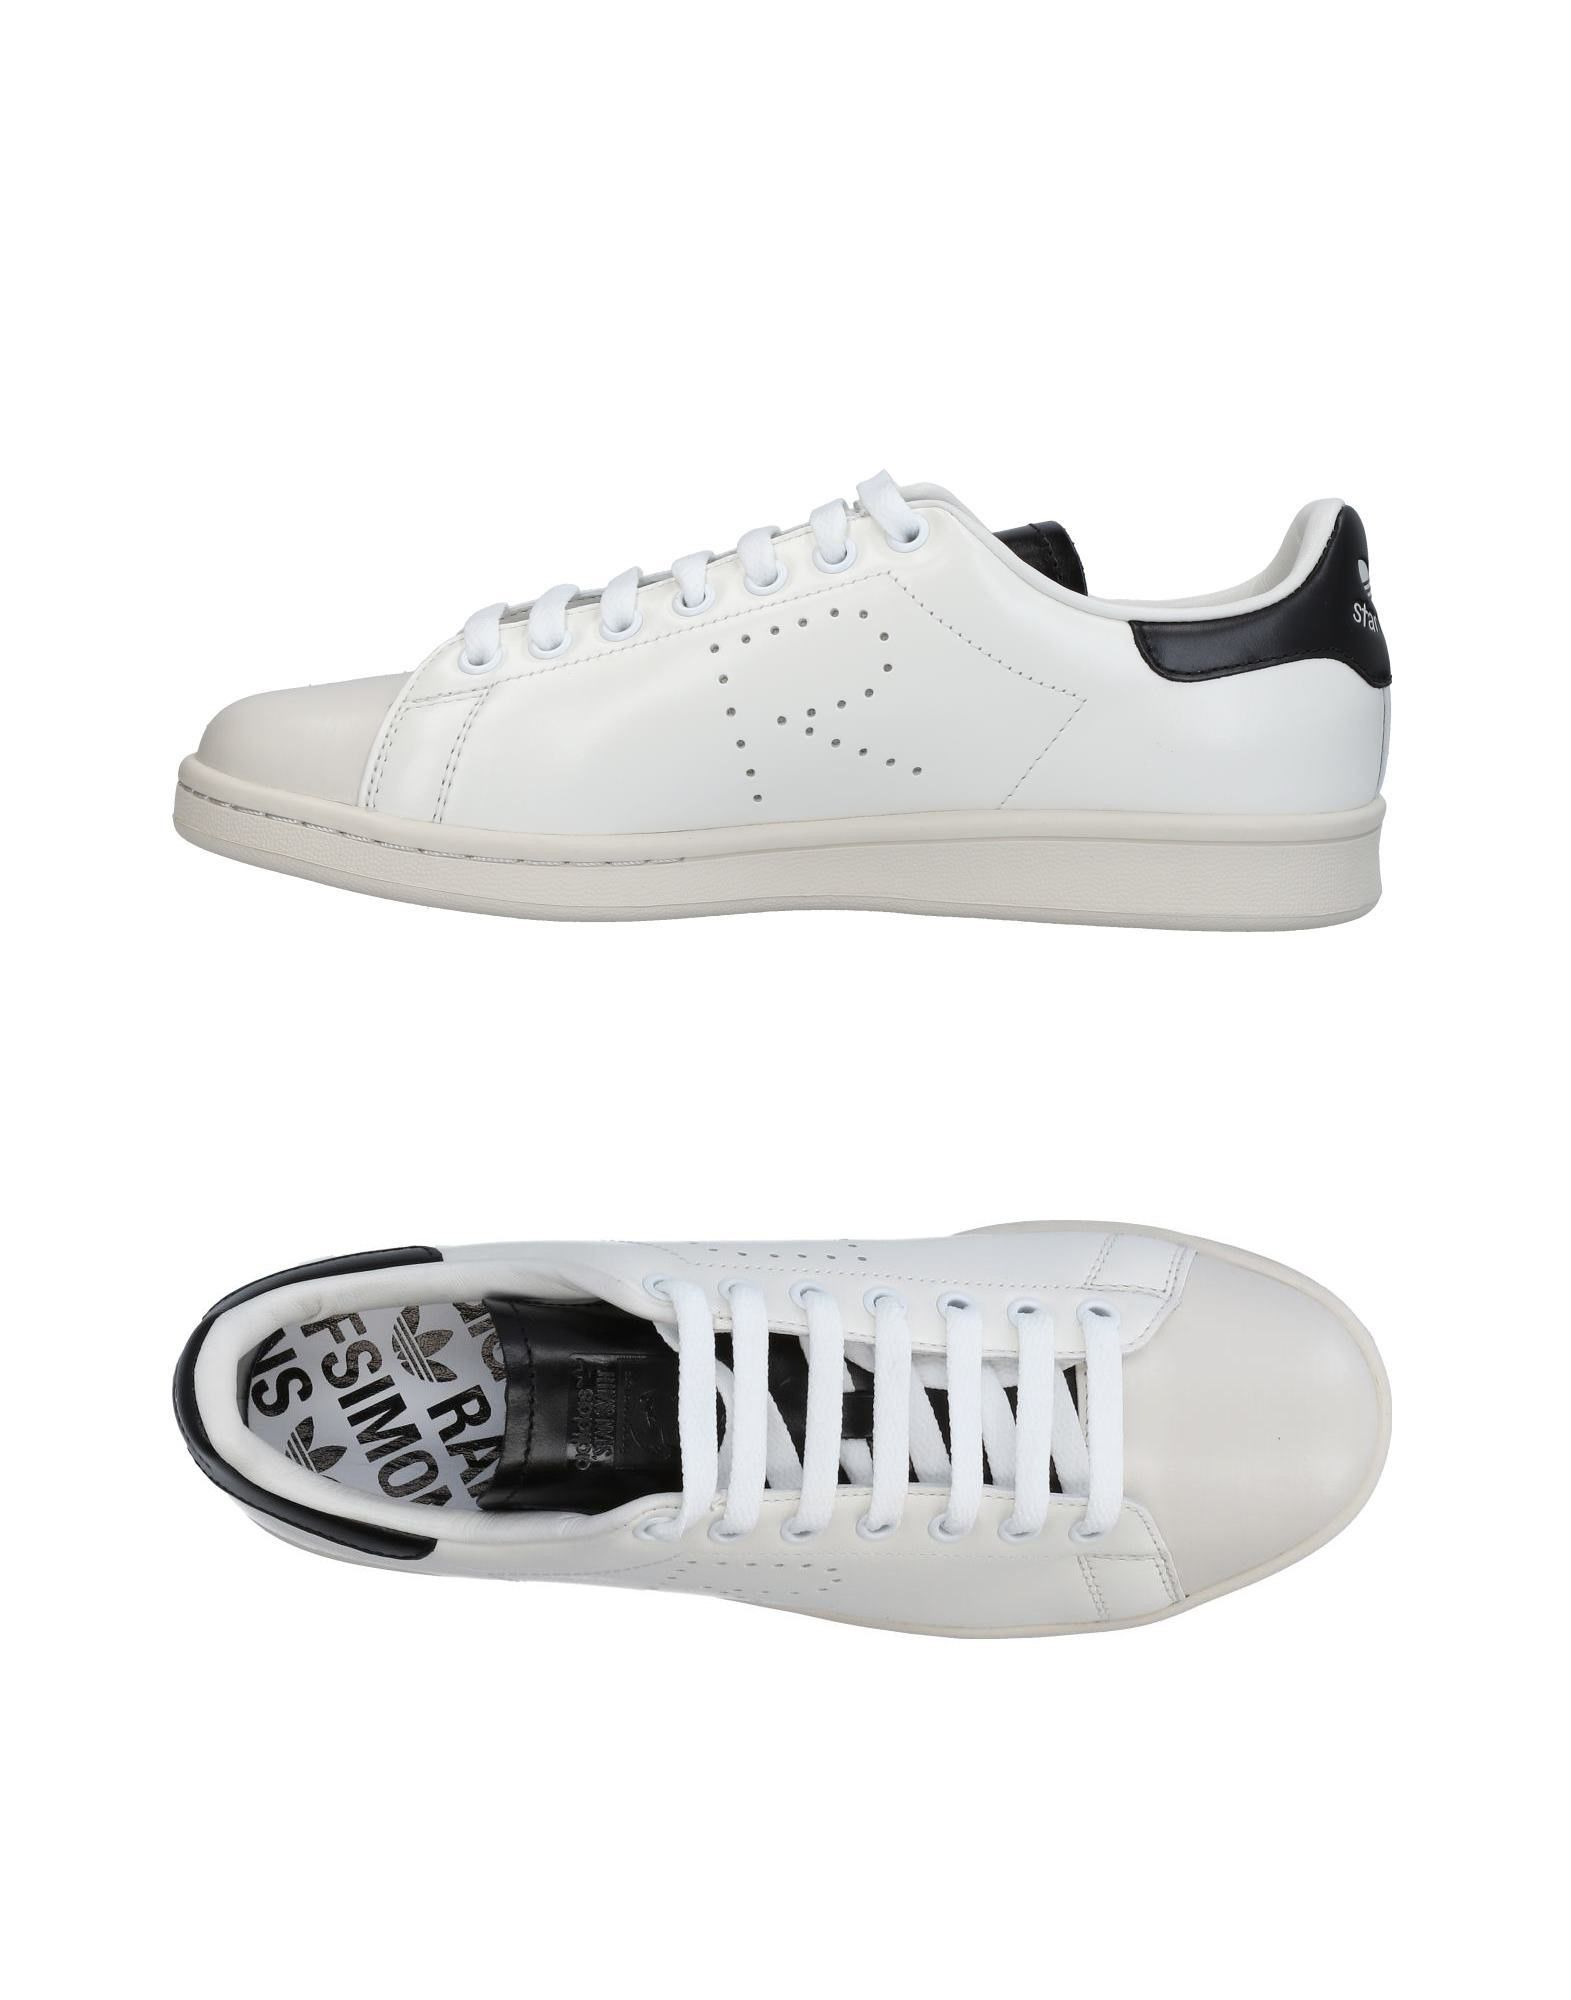 Sneakers Sneakers Sneakers Adidas By Raf Simons Uomo - 11462875HS aba89f